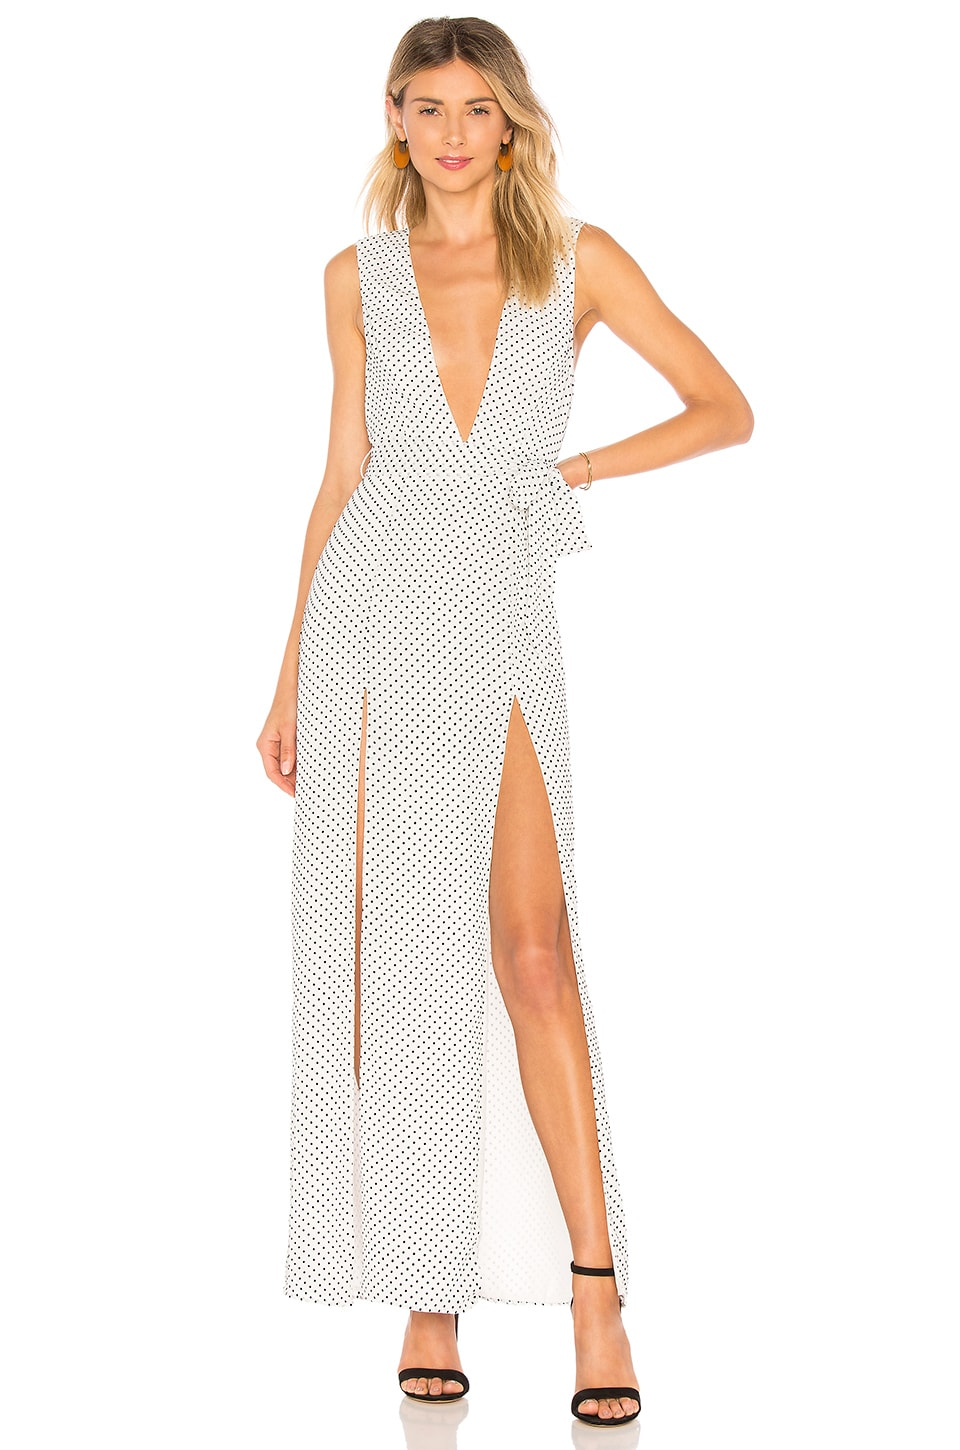 ale by alessandra x REVOLVE Taura Maxi Dress in Black White Dot